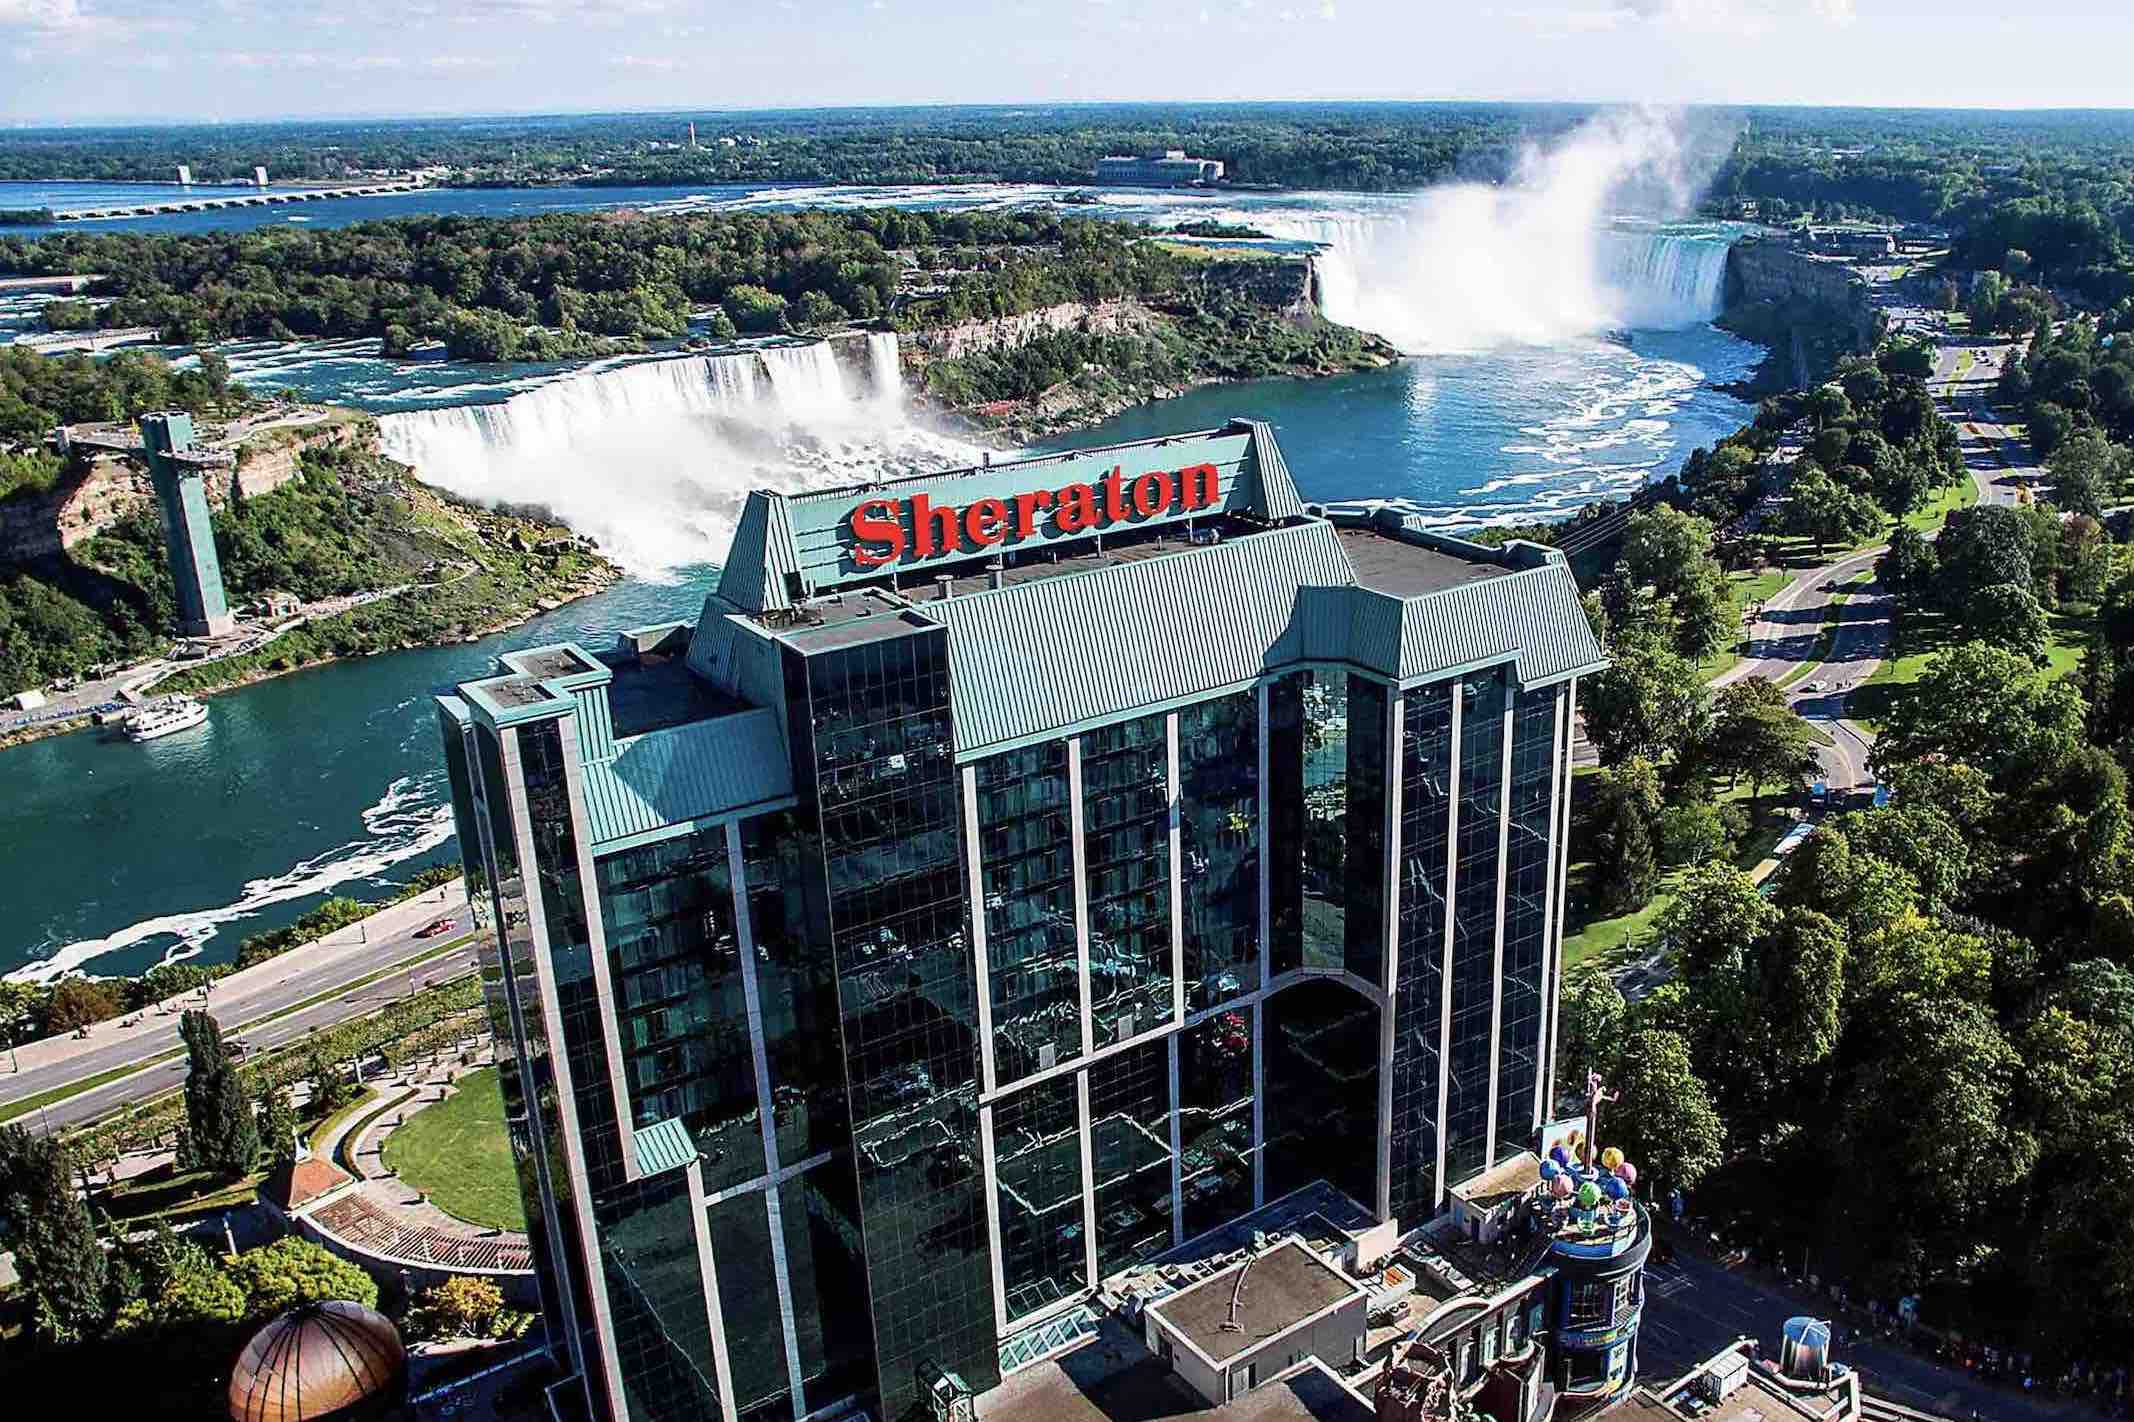 Sheraton on the Falls Hotel aerial view of luxury hotels in niagara falls with waterfalls in background